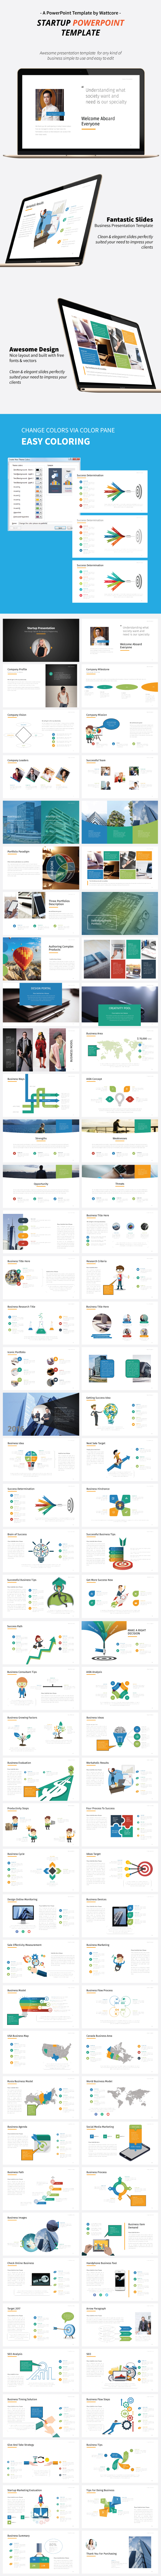 Startup Presentation Template - Business PowerPoint Templates